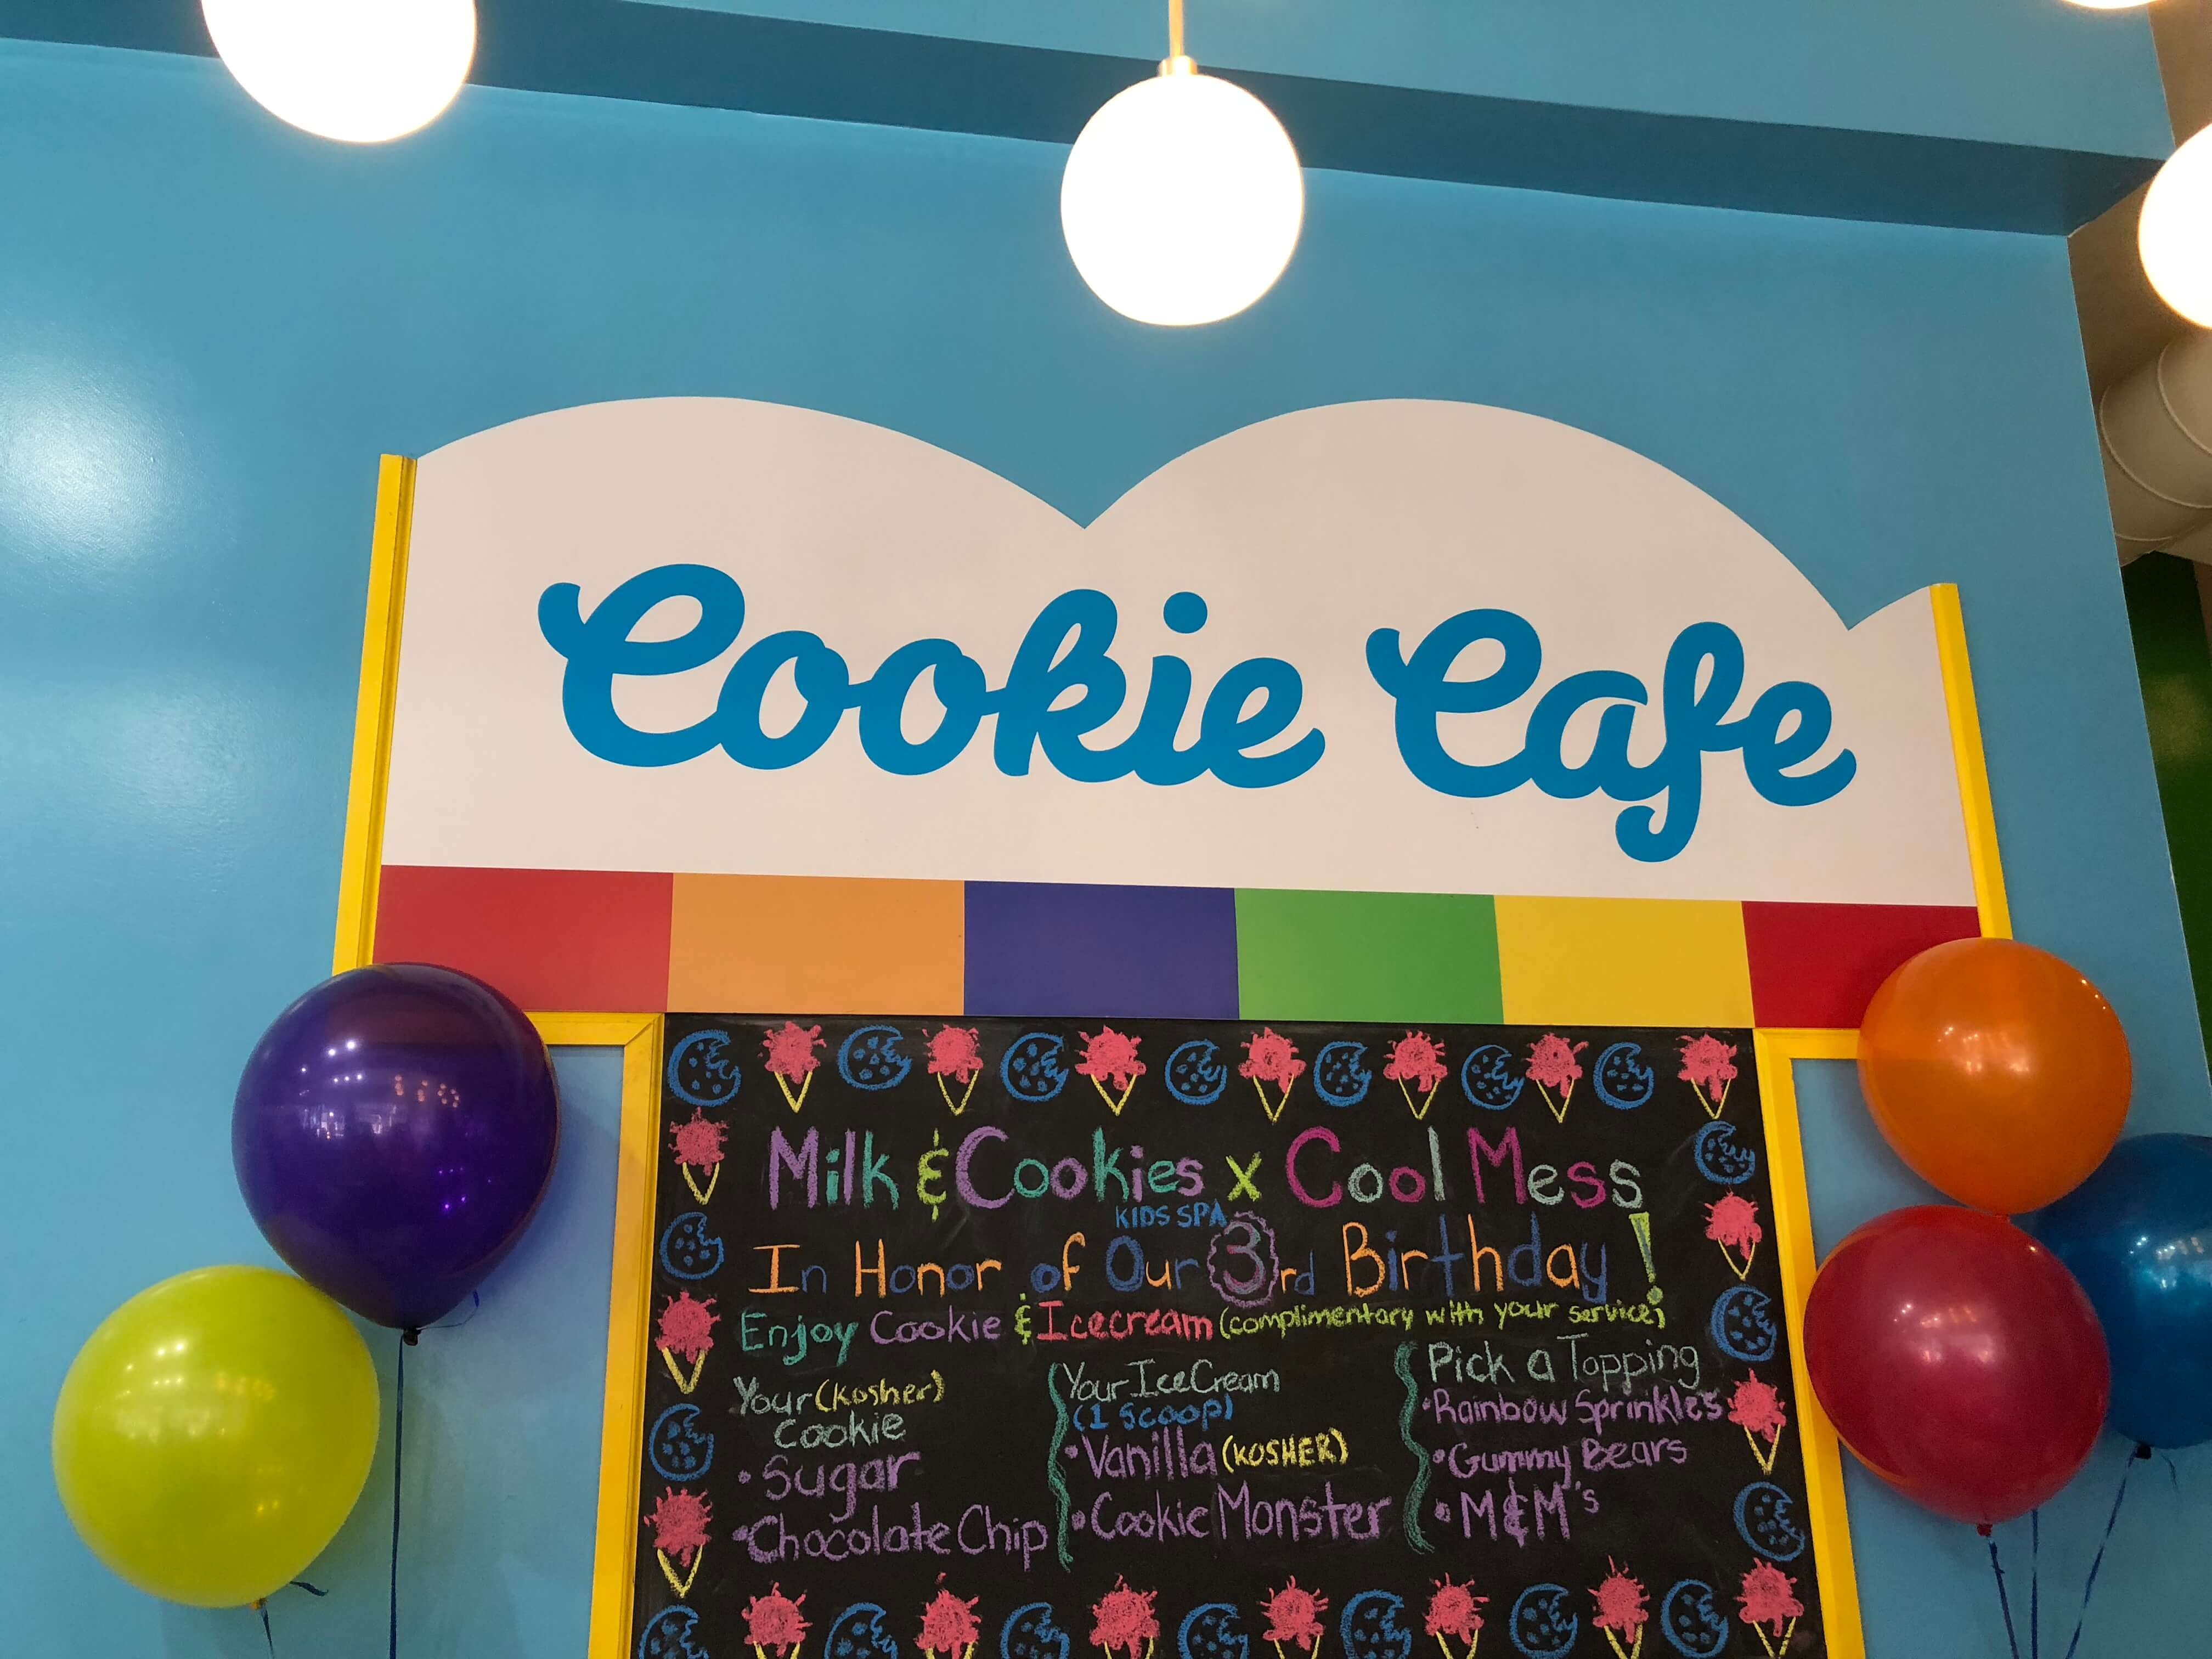 Party and Pampering at The Milk & Cookies Kids Spa cookie cafe